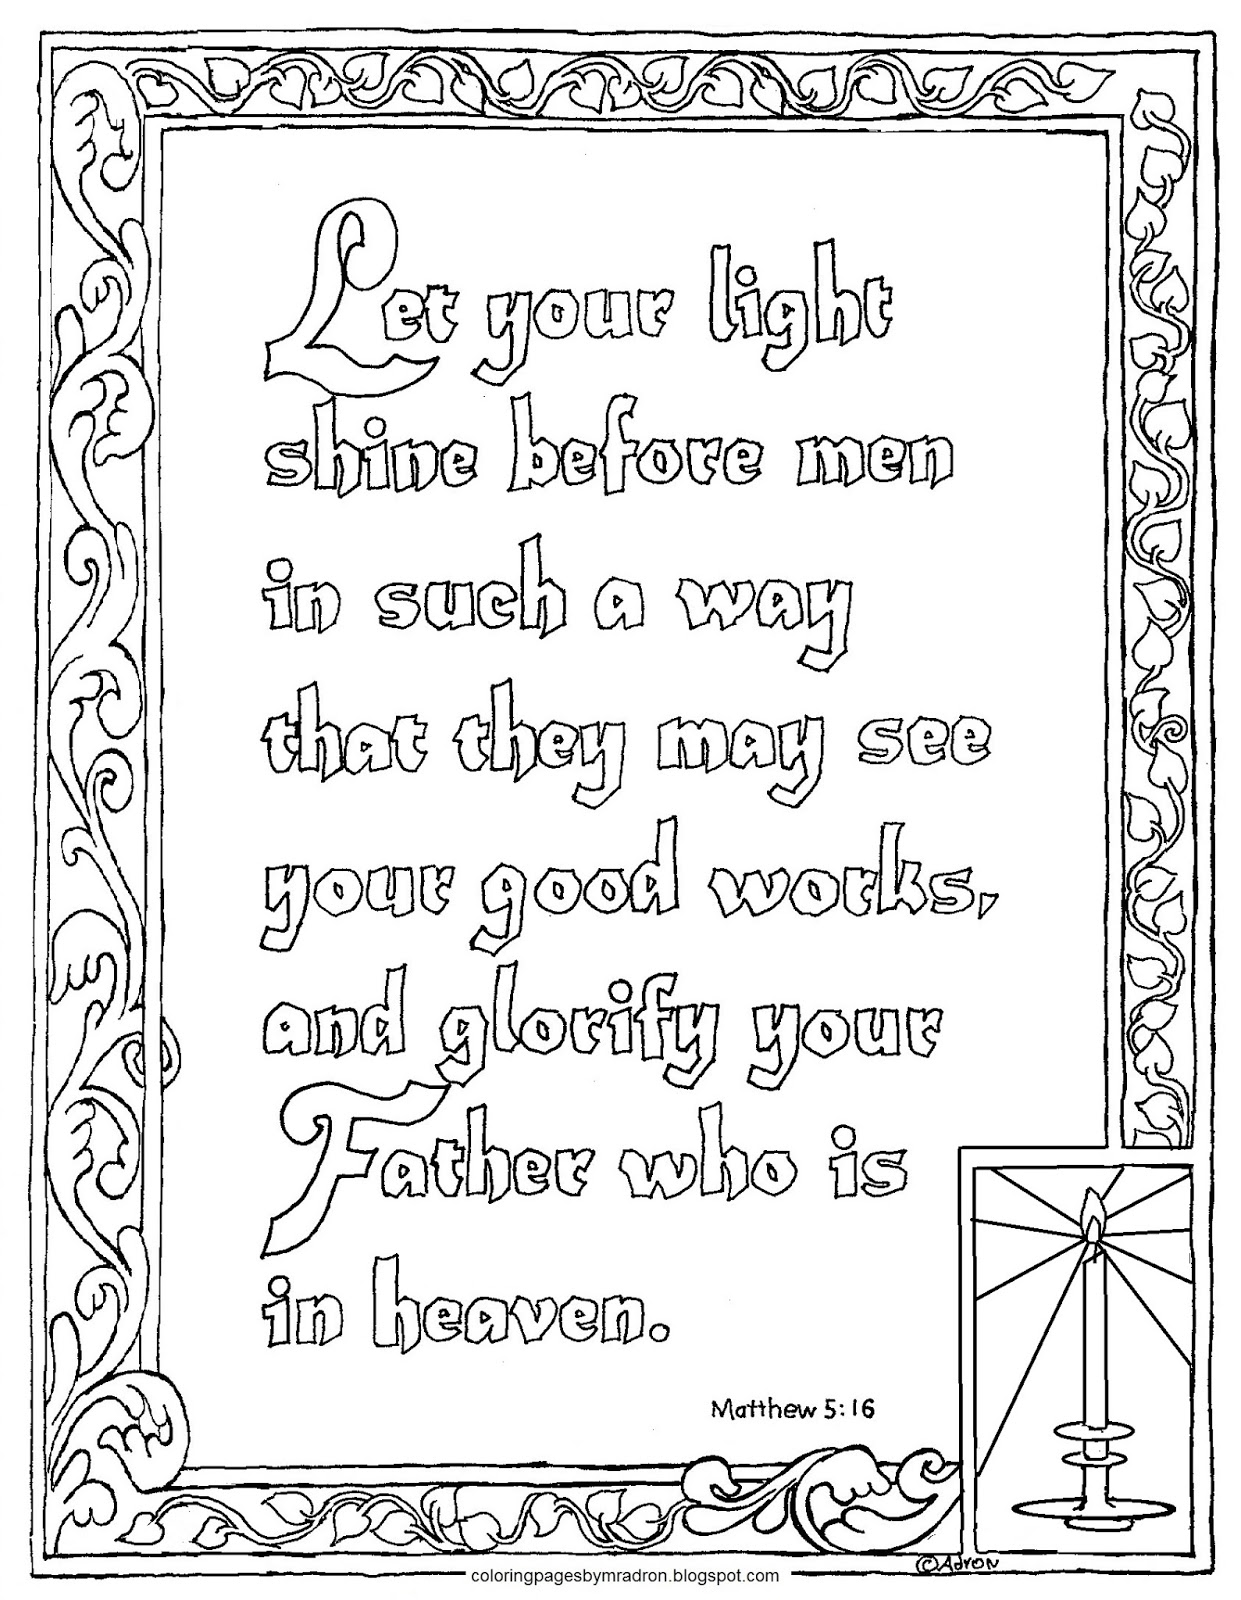 Coloring pages for kids by mr adron printable matthew 5 for Matthew 6 25 34 coloring page